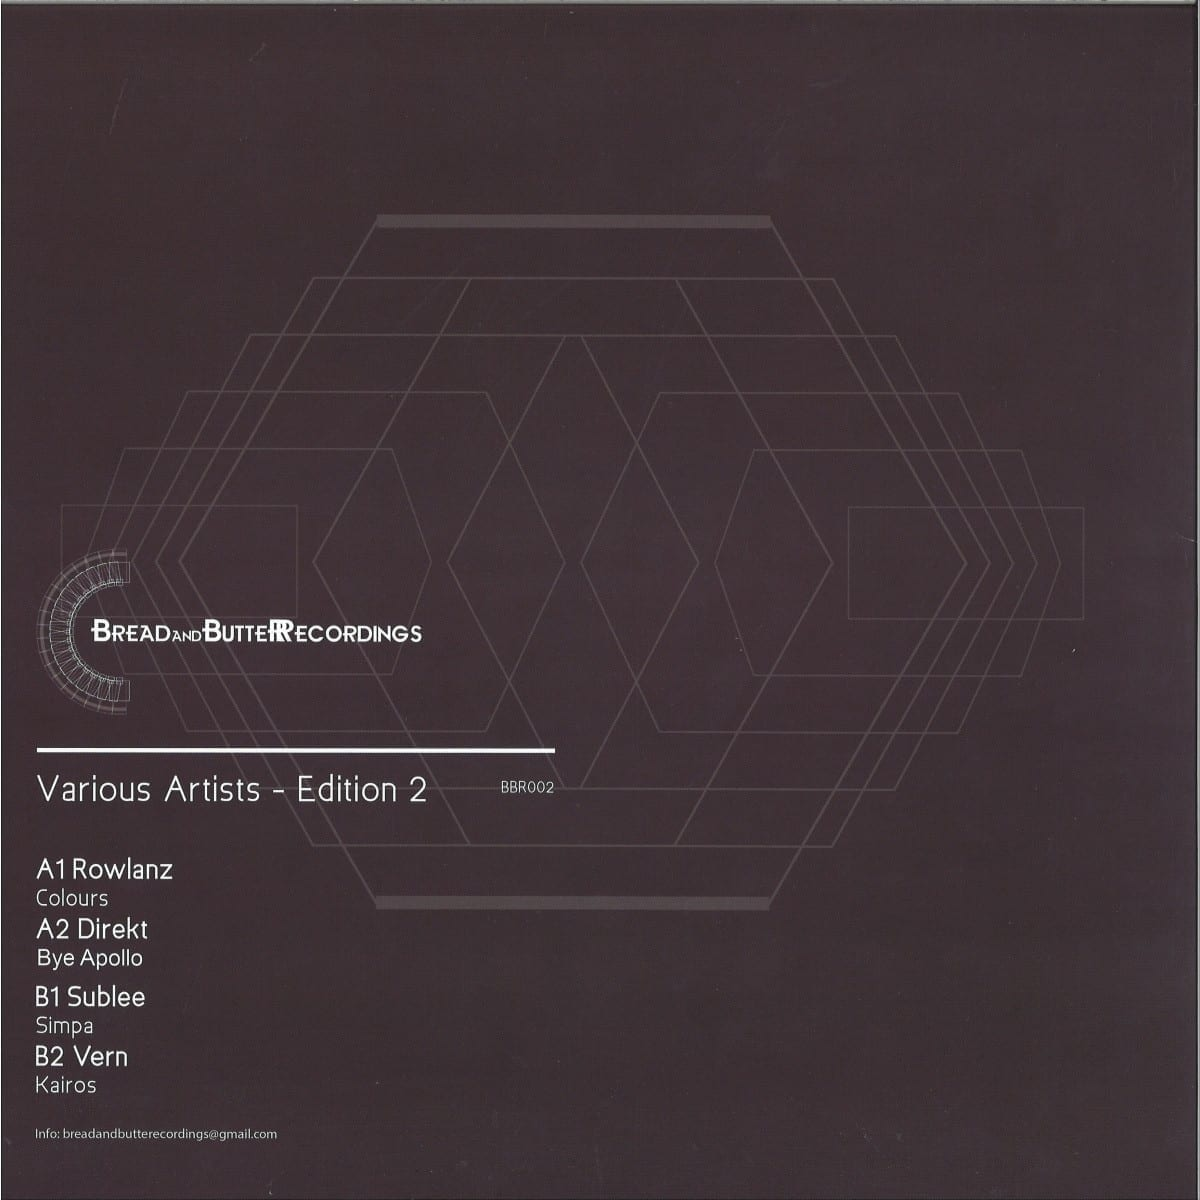 Various Artists - Edition 2 [Bread And Butter Recordings] 02